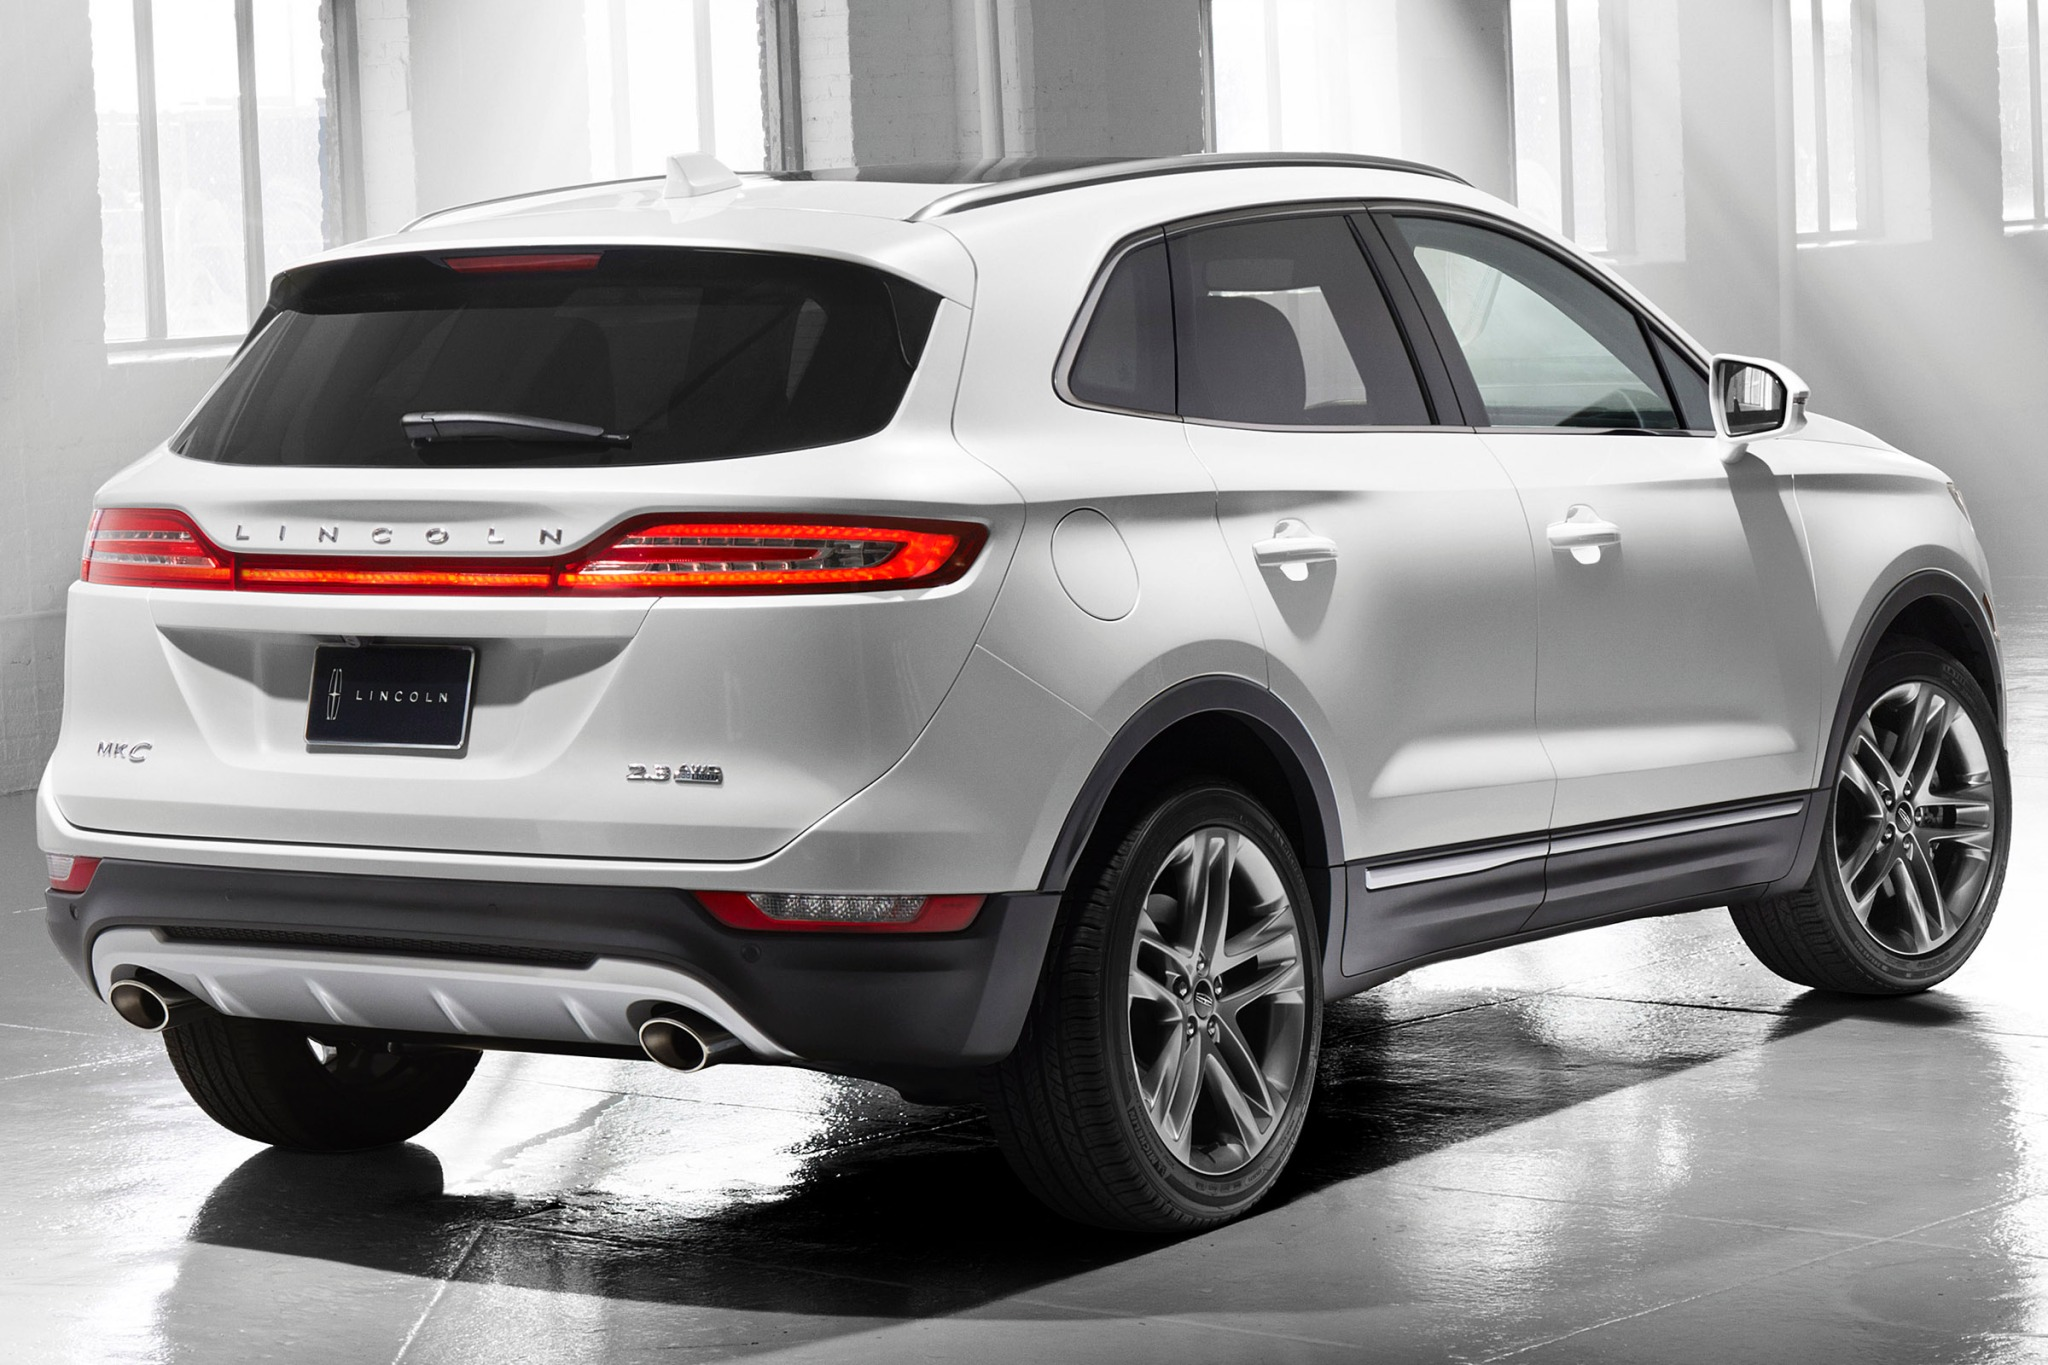 2015 Lincoln MKC 4dr SUV  exterior #6